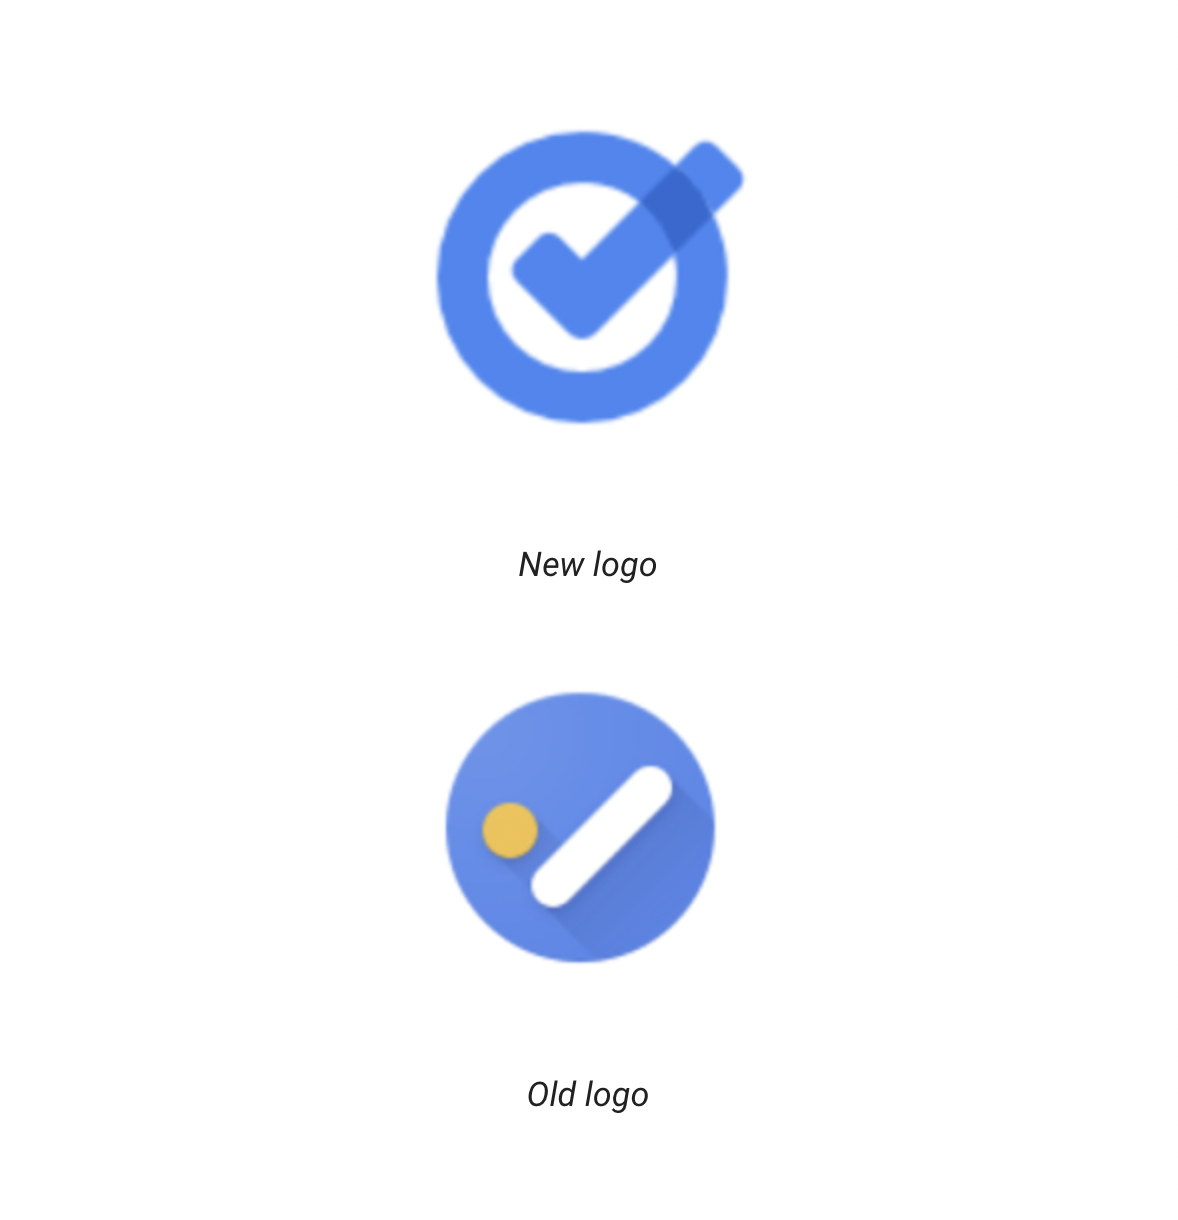 """<!-- wp:paragraph --> <p>Meanwhile, there was an update to the Android app today, but it does not bring the updated design. Following <a href=""""https://9to5google.com/2021/09/05/gmail-material-you-redesign/"""">Gmail</a>, <a href=""""https://9to5google.com/2021/09/09/material-you-google-workspace/"""">Drive</a> and <a href=""""https://9to5google.com/2021/09/15/google-keep-material-you-update/"""">Keep</a>, Google Tasks should also be on track to get a Material You redesign that mostly introduces Dynamic Color support (on Pixel) and a new rounded square FAB.</p> <!-- /wp:paragraph --> <!-- wp:paragraph --> <p>It will begin rolling out on September 23 and be fully available over the coming weeks:</p> <!-- /wp:paragraph --> <!-- wp:quote -->   <blockquote class=""""wp-block-quote""""><p>Available to all Google Workspace customers, as well as G Suite Basic and Business customers</p></blockquote> <!-- /wp:quote -->"""